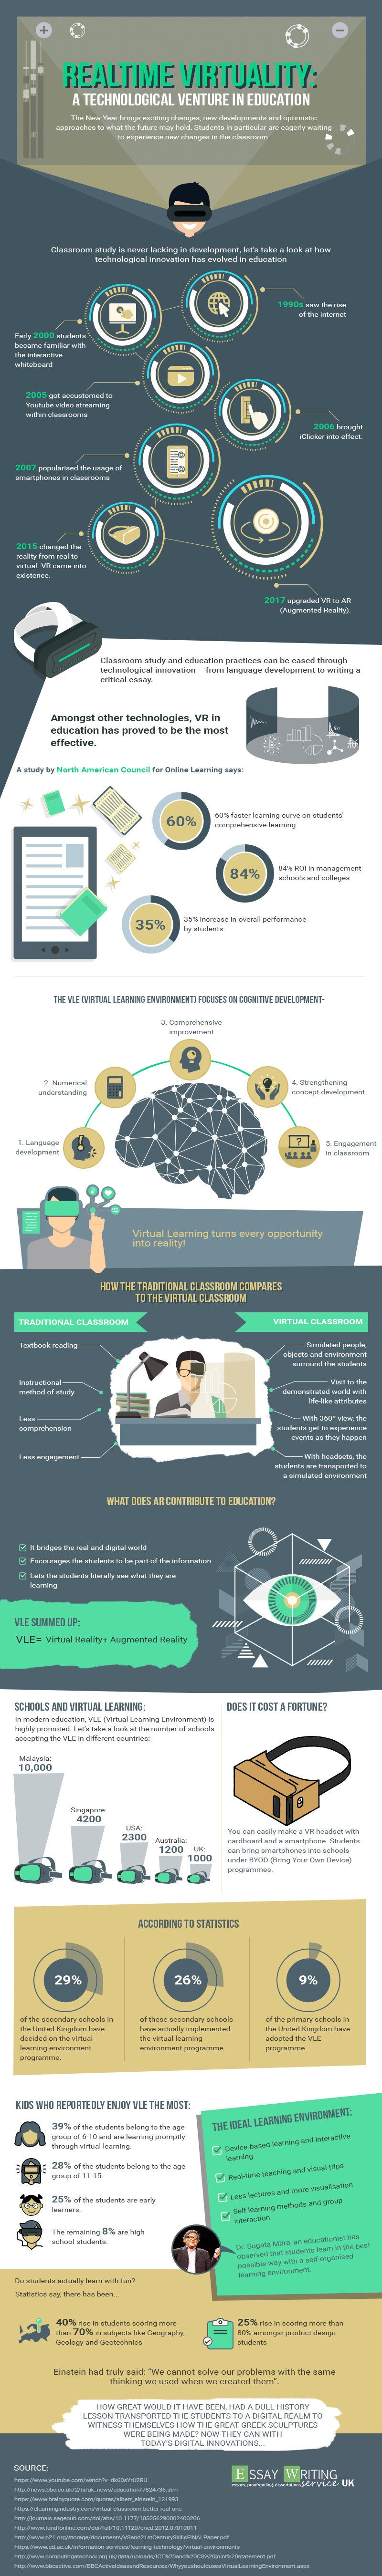 Virtual Reality Learning: A Technological Venture In Education